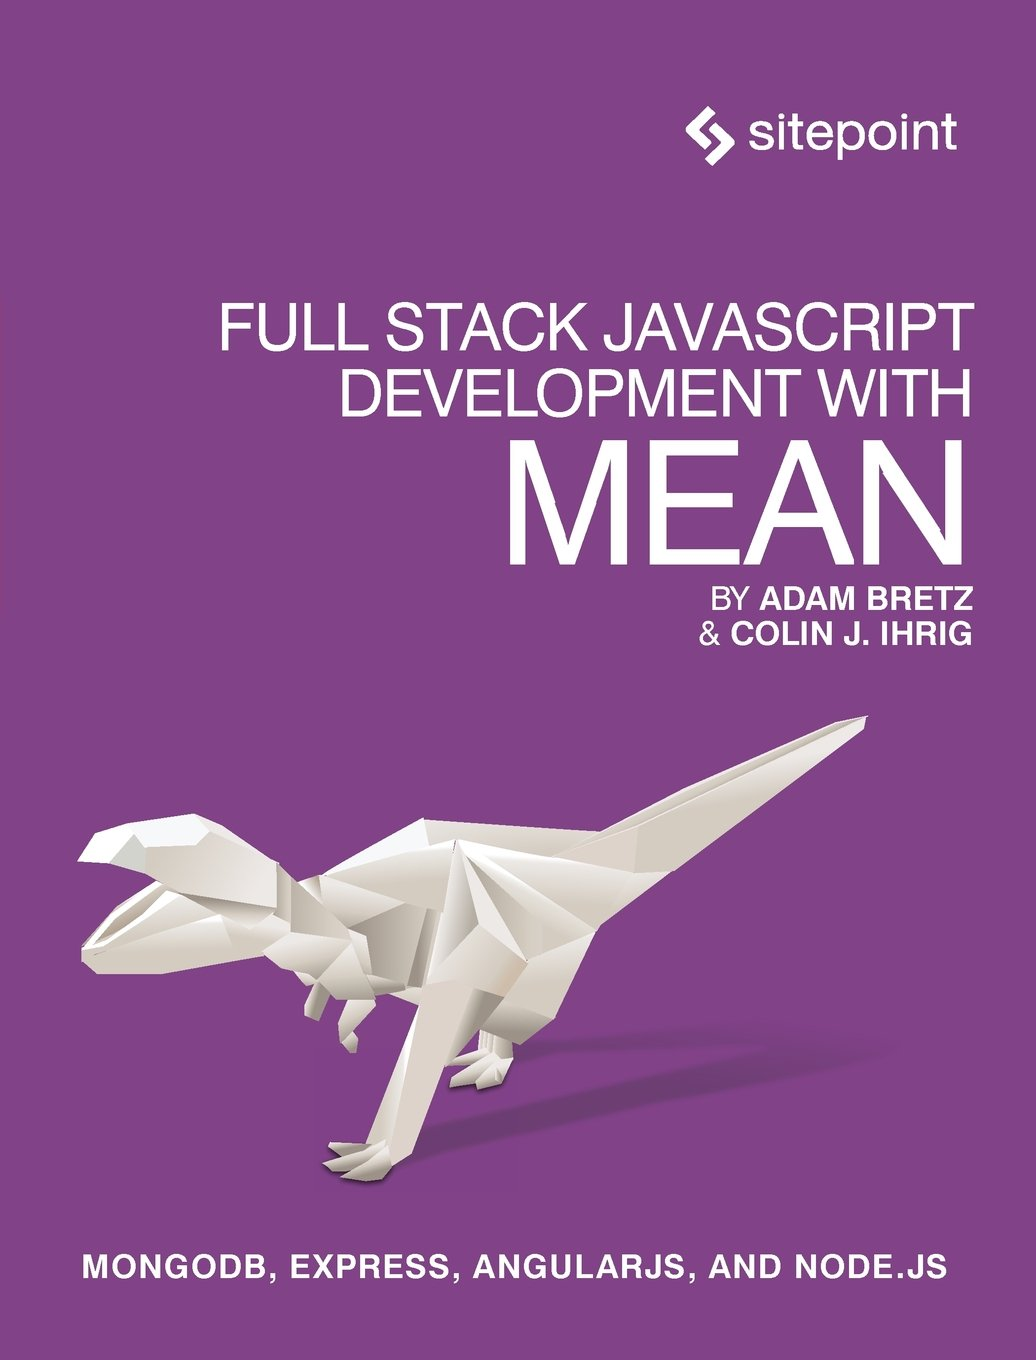 Full Stack javascript Development With MEAN download dree